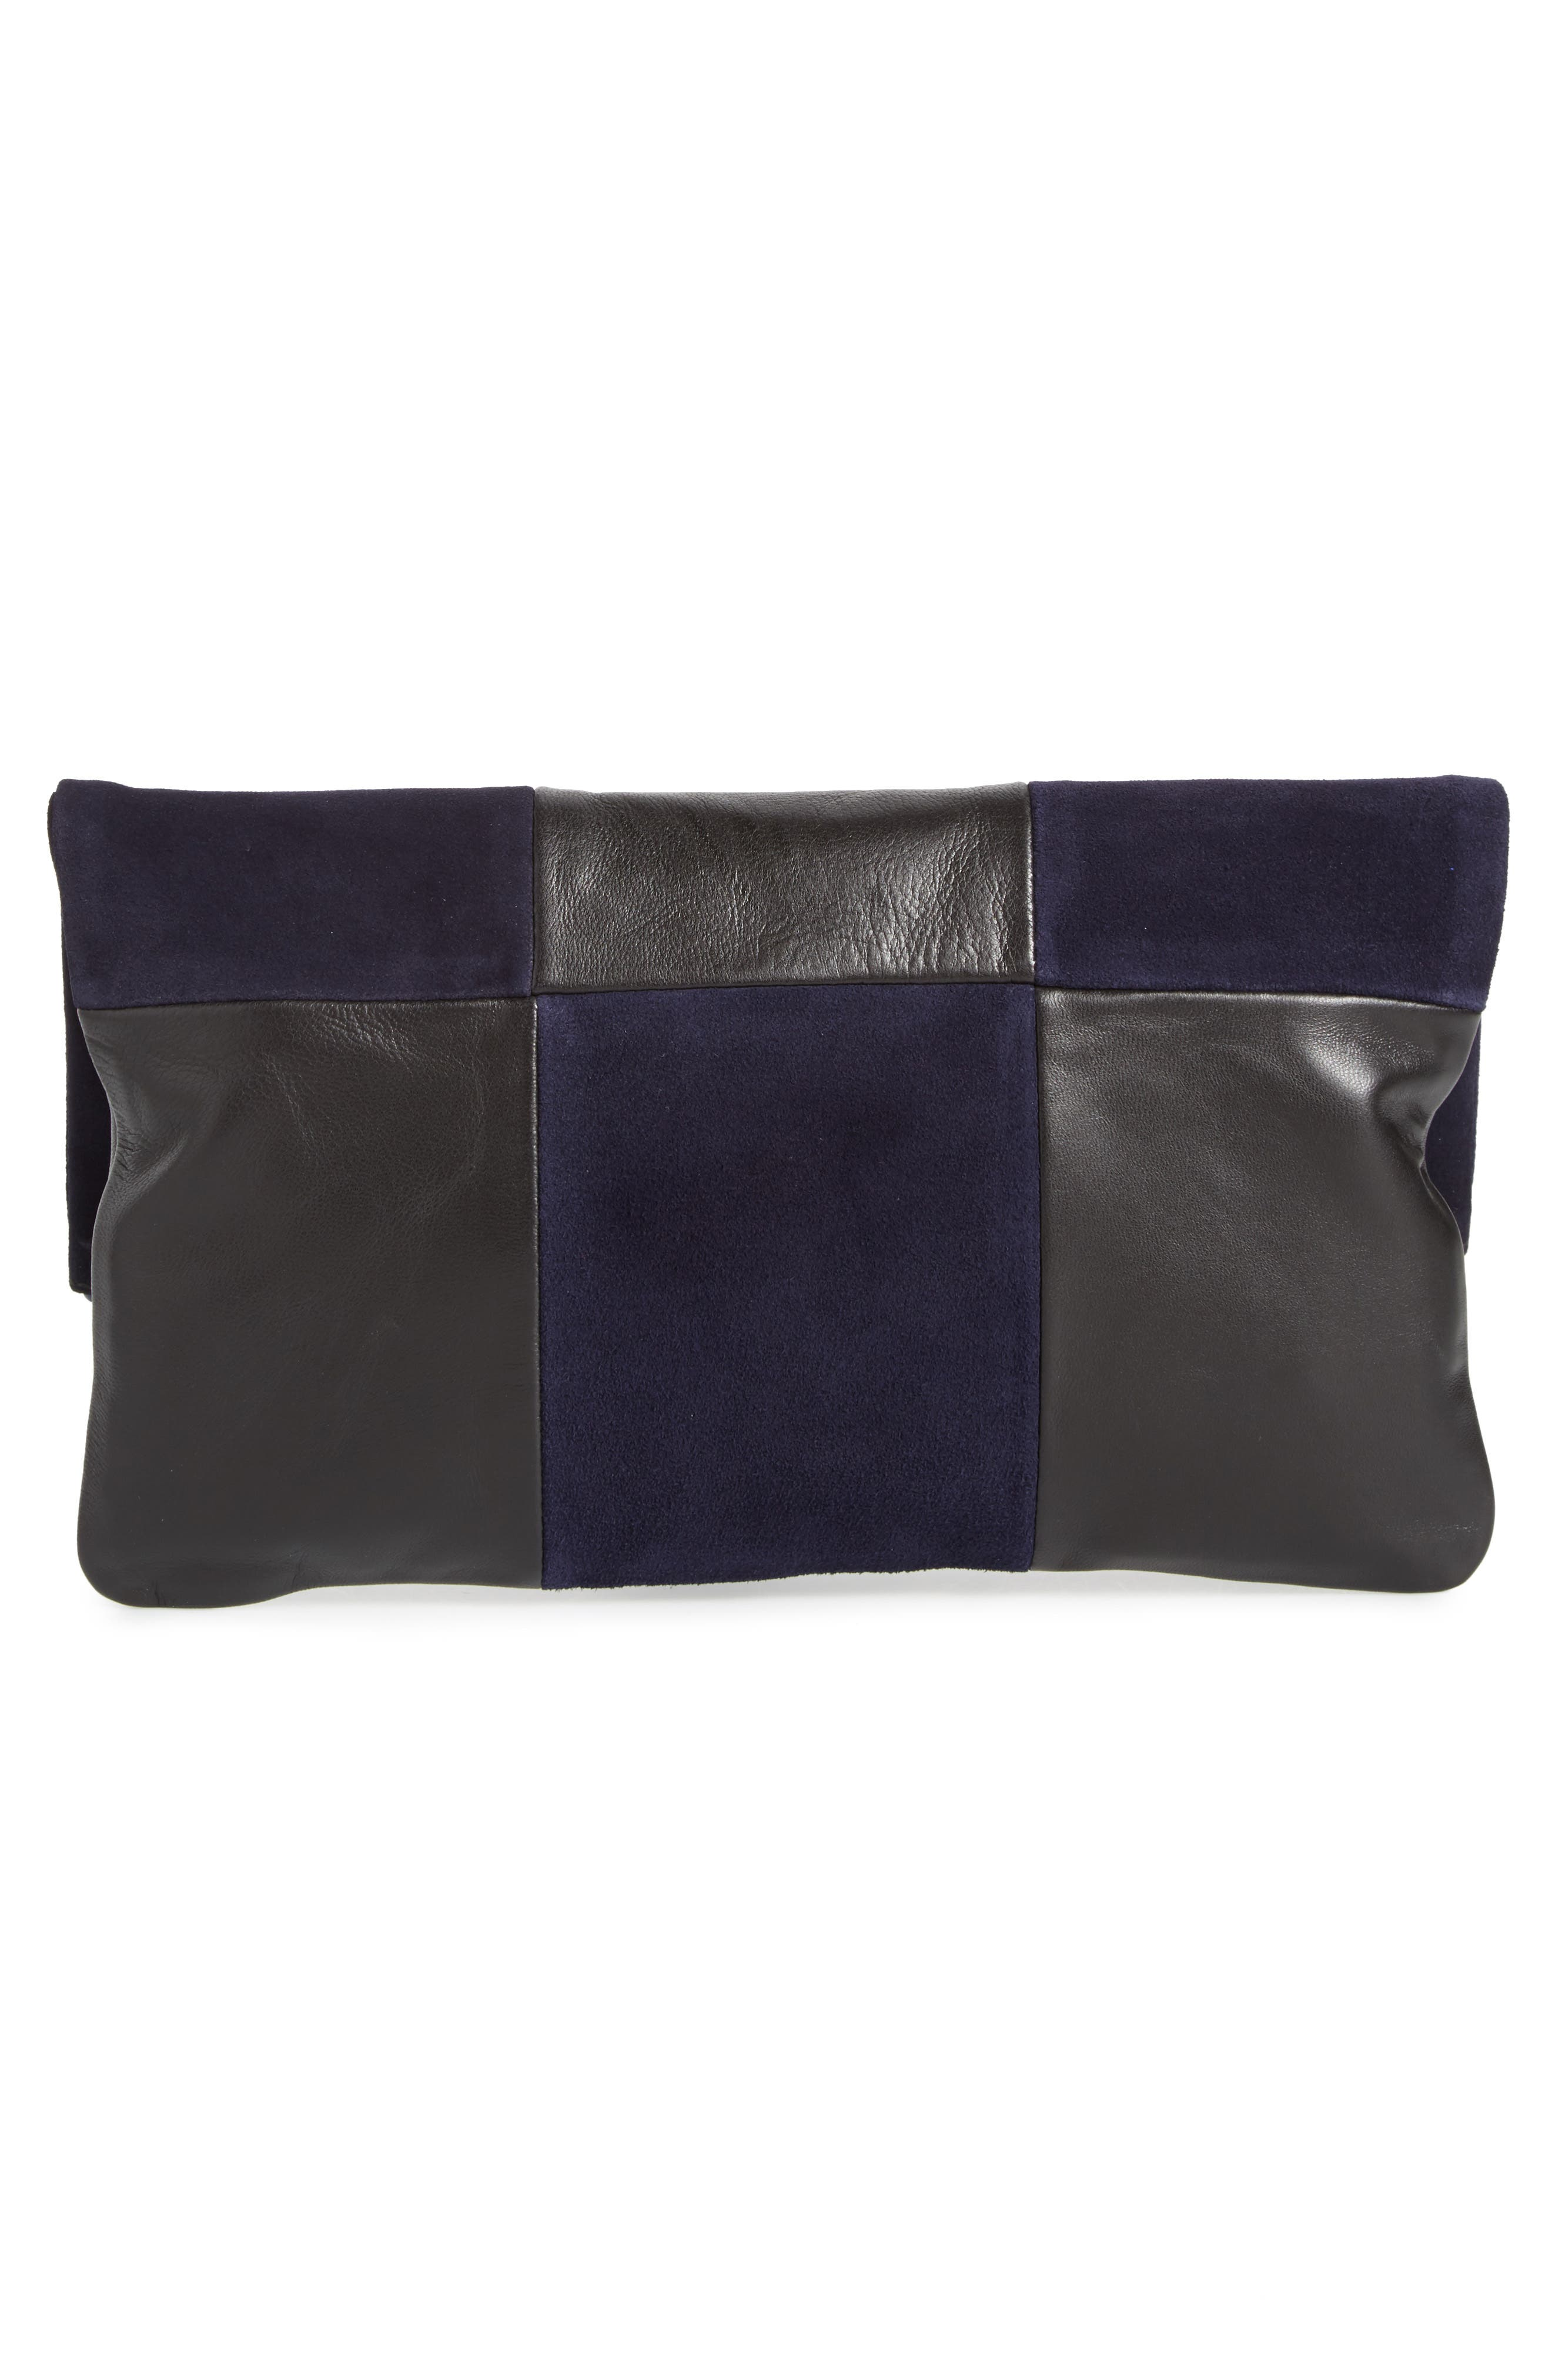 Leather & Suede Foldover Clutch,                             Alternate thumbnail 3, color,                             001